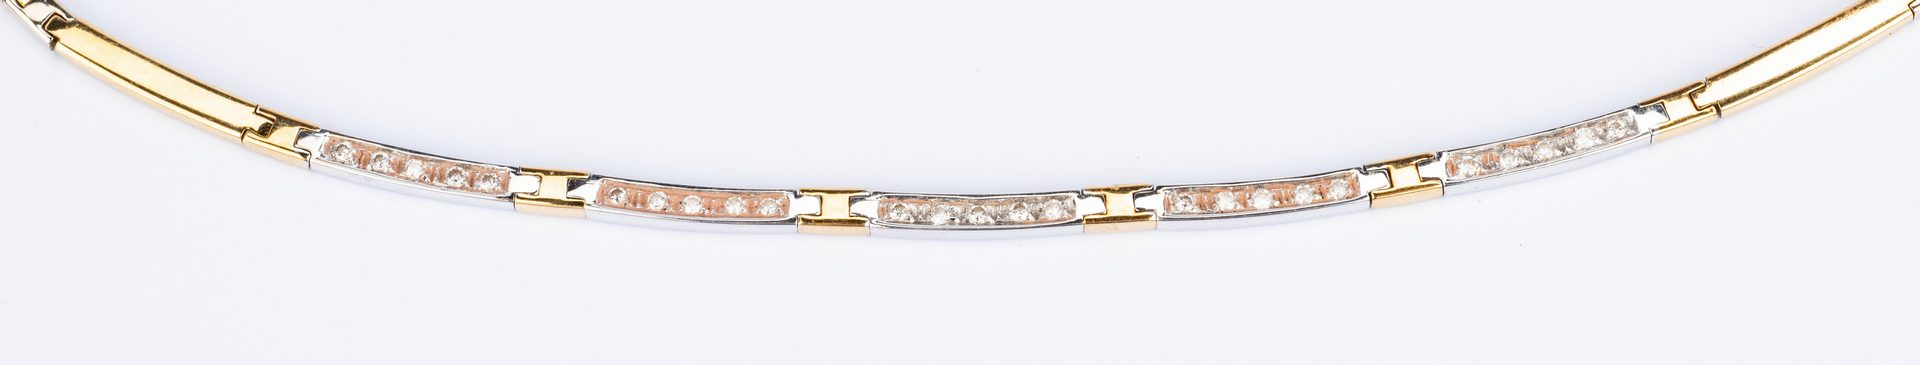 Lot 191: Diamond Bracelet and Choker